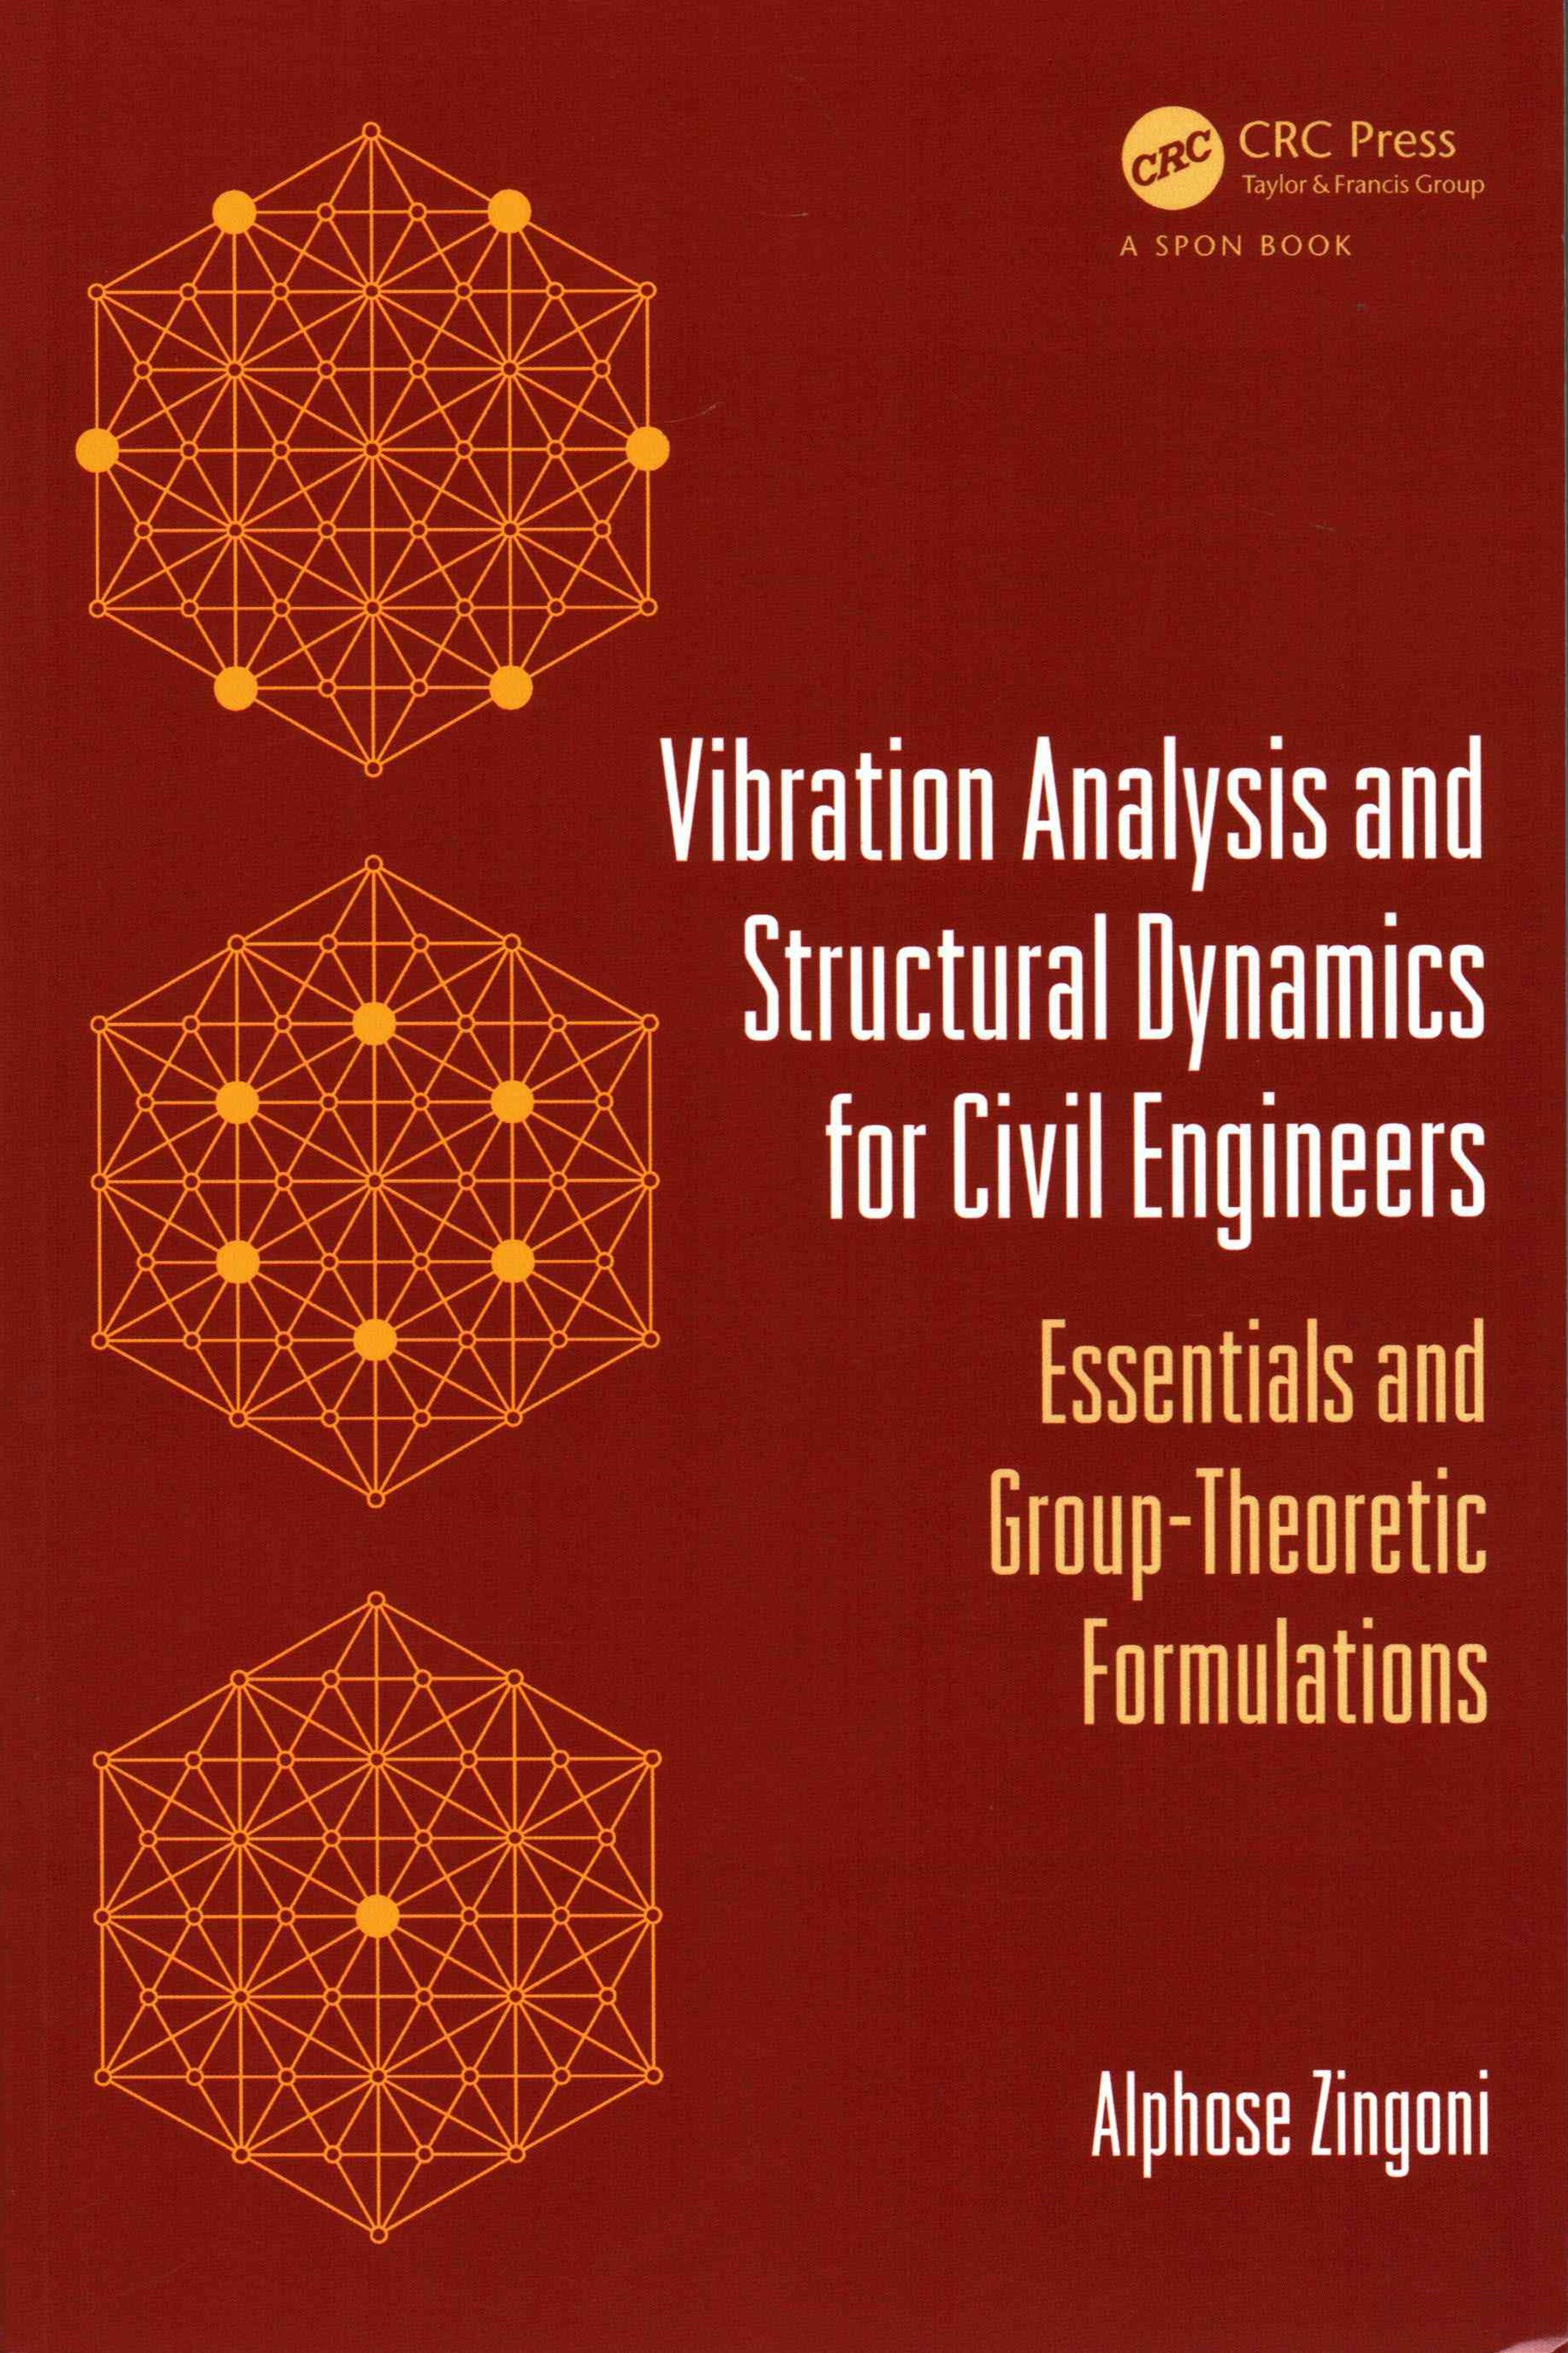 Vibration Analysis and Structural Dynamics for Civil Engineers